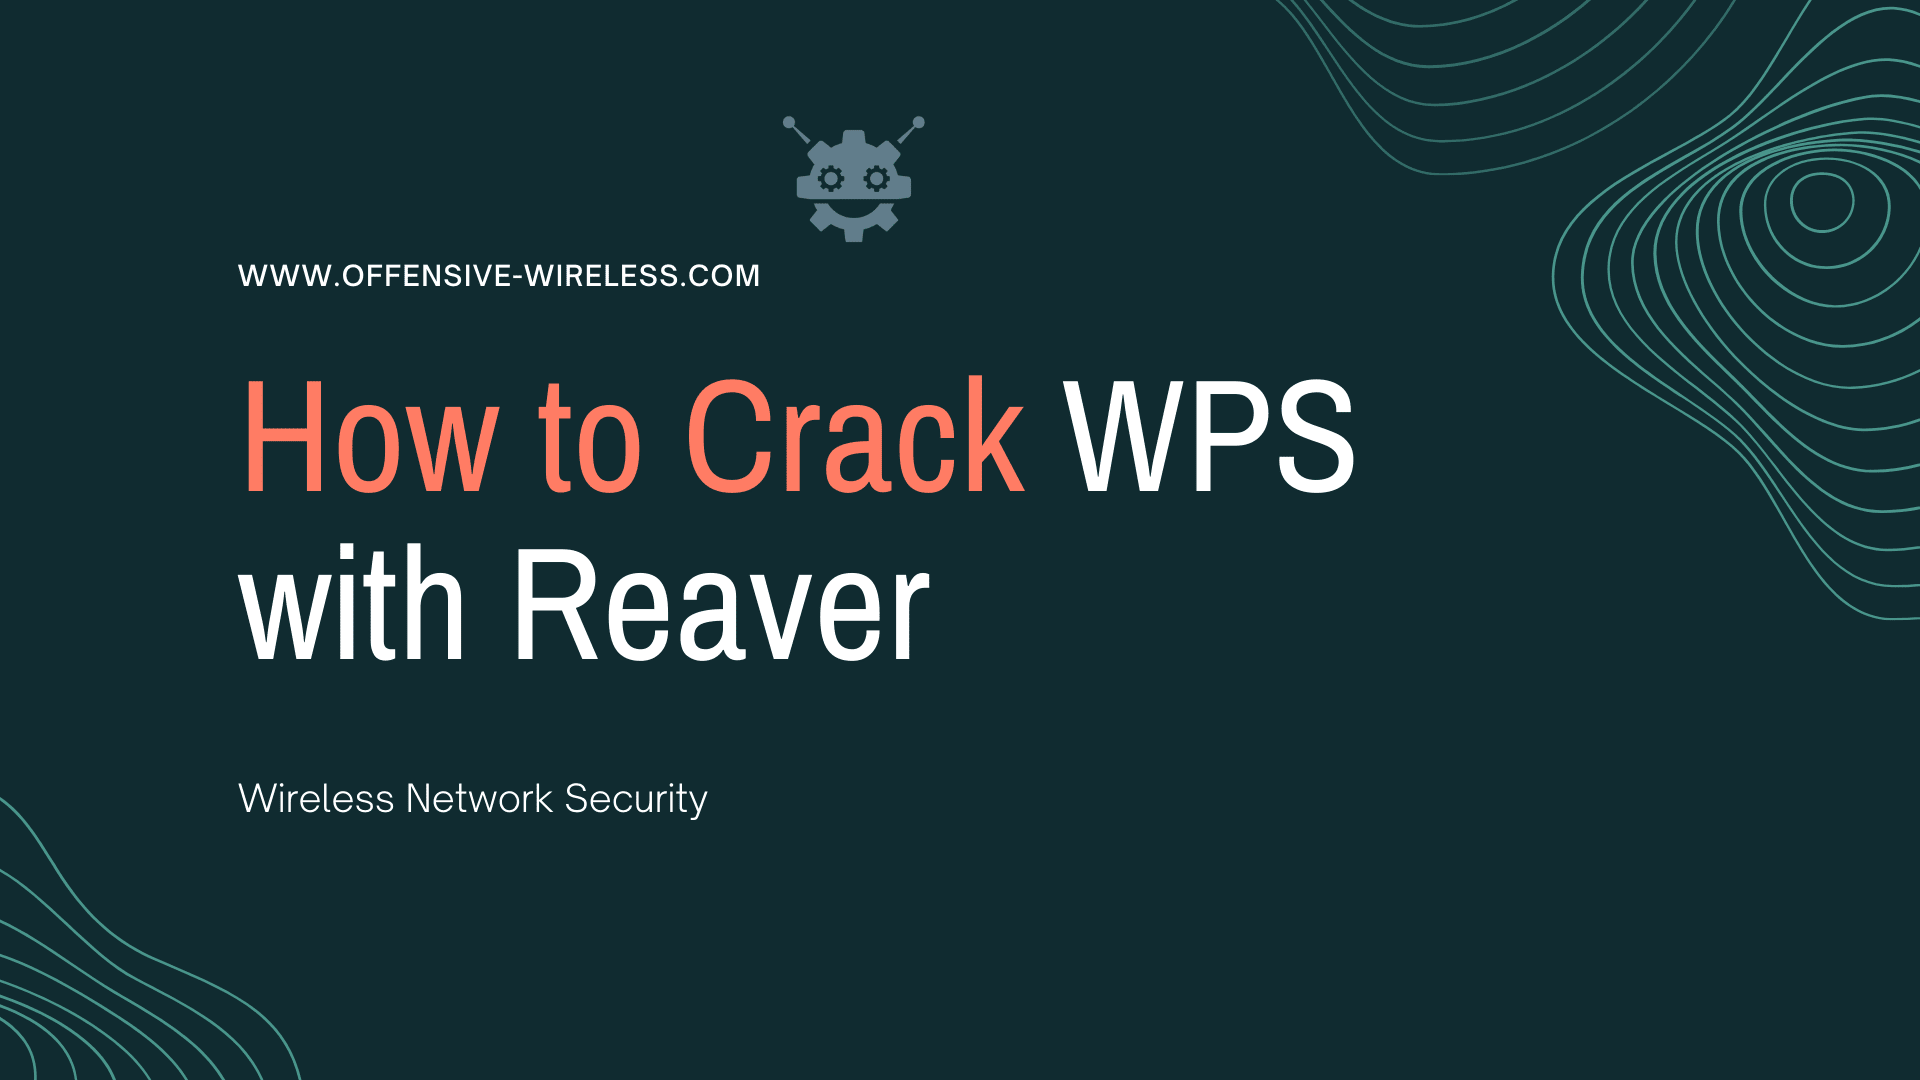 How to Crack WPS with Reaver